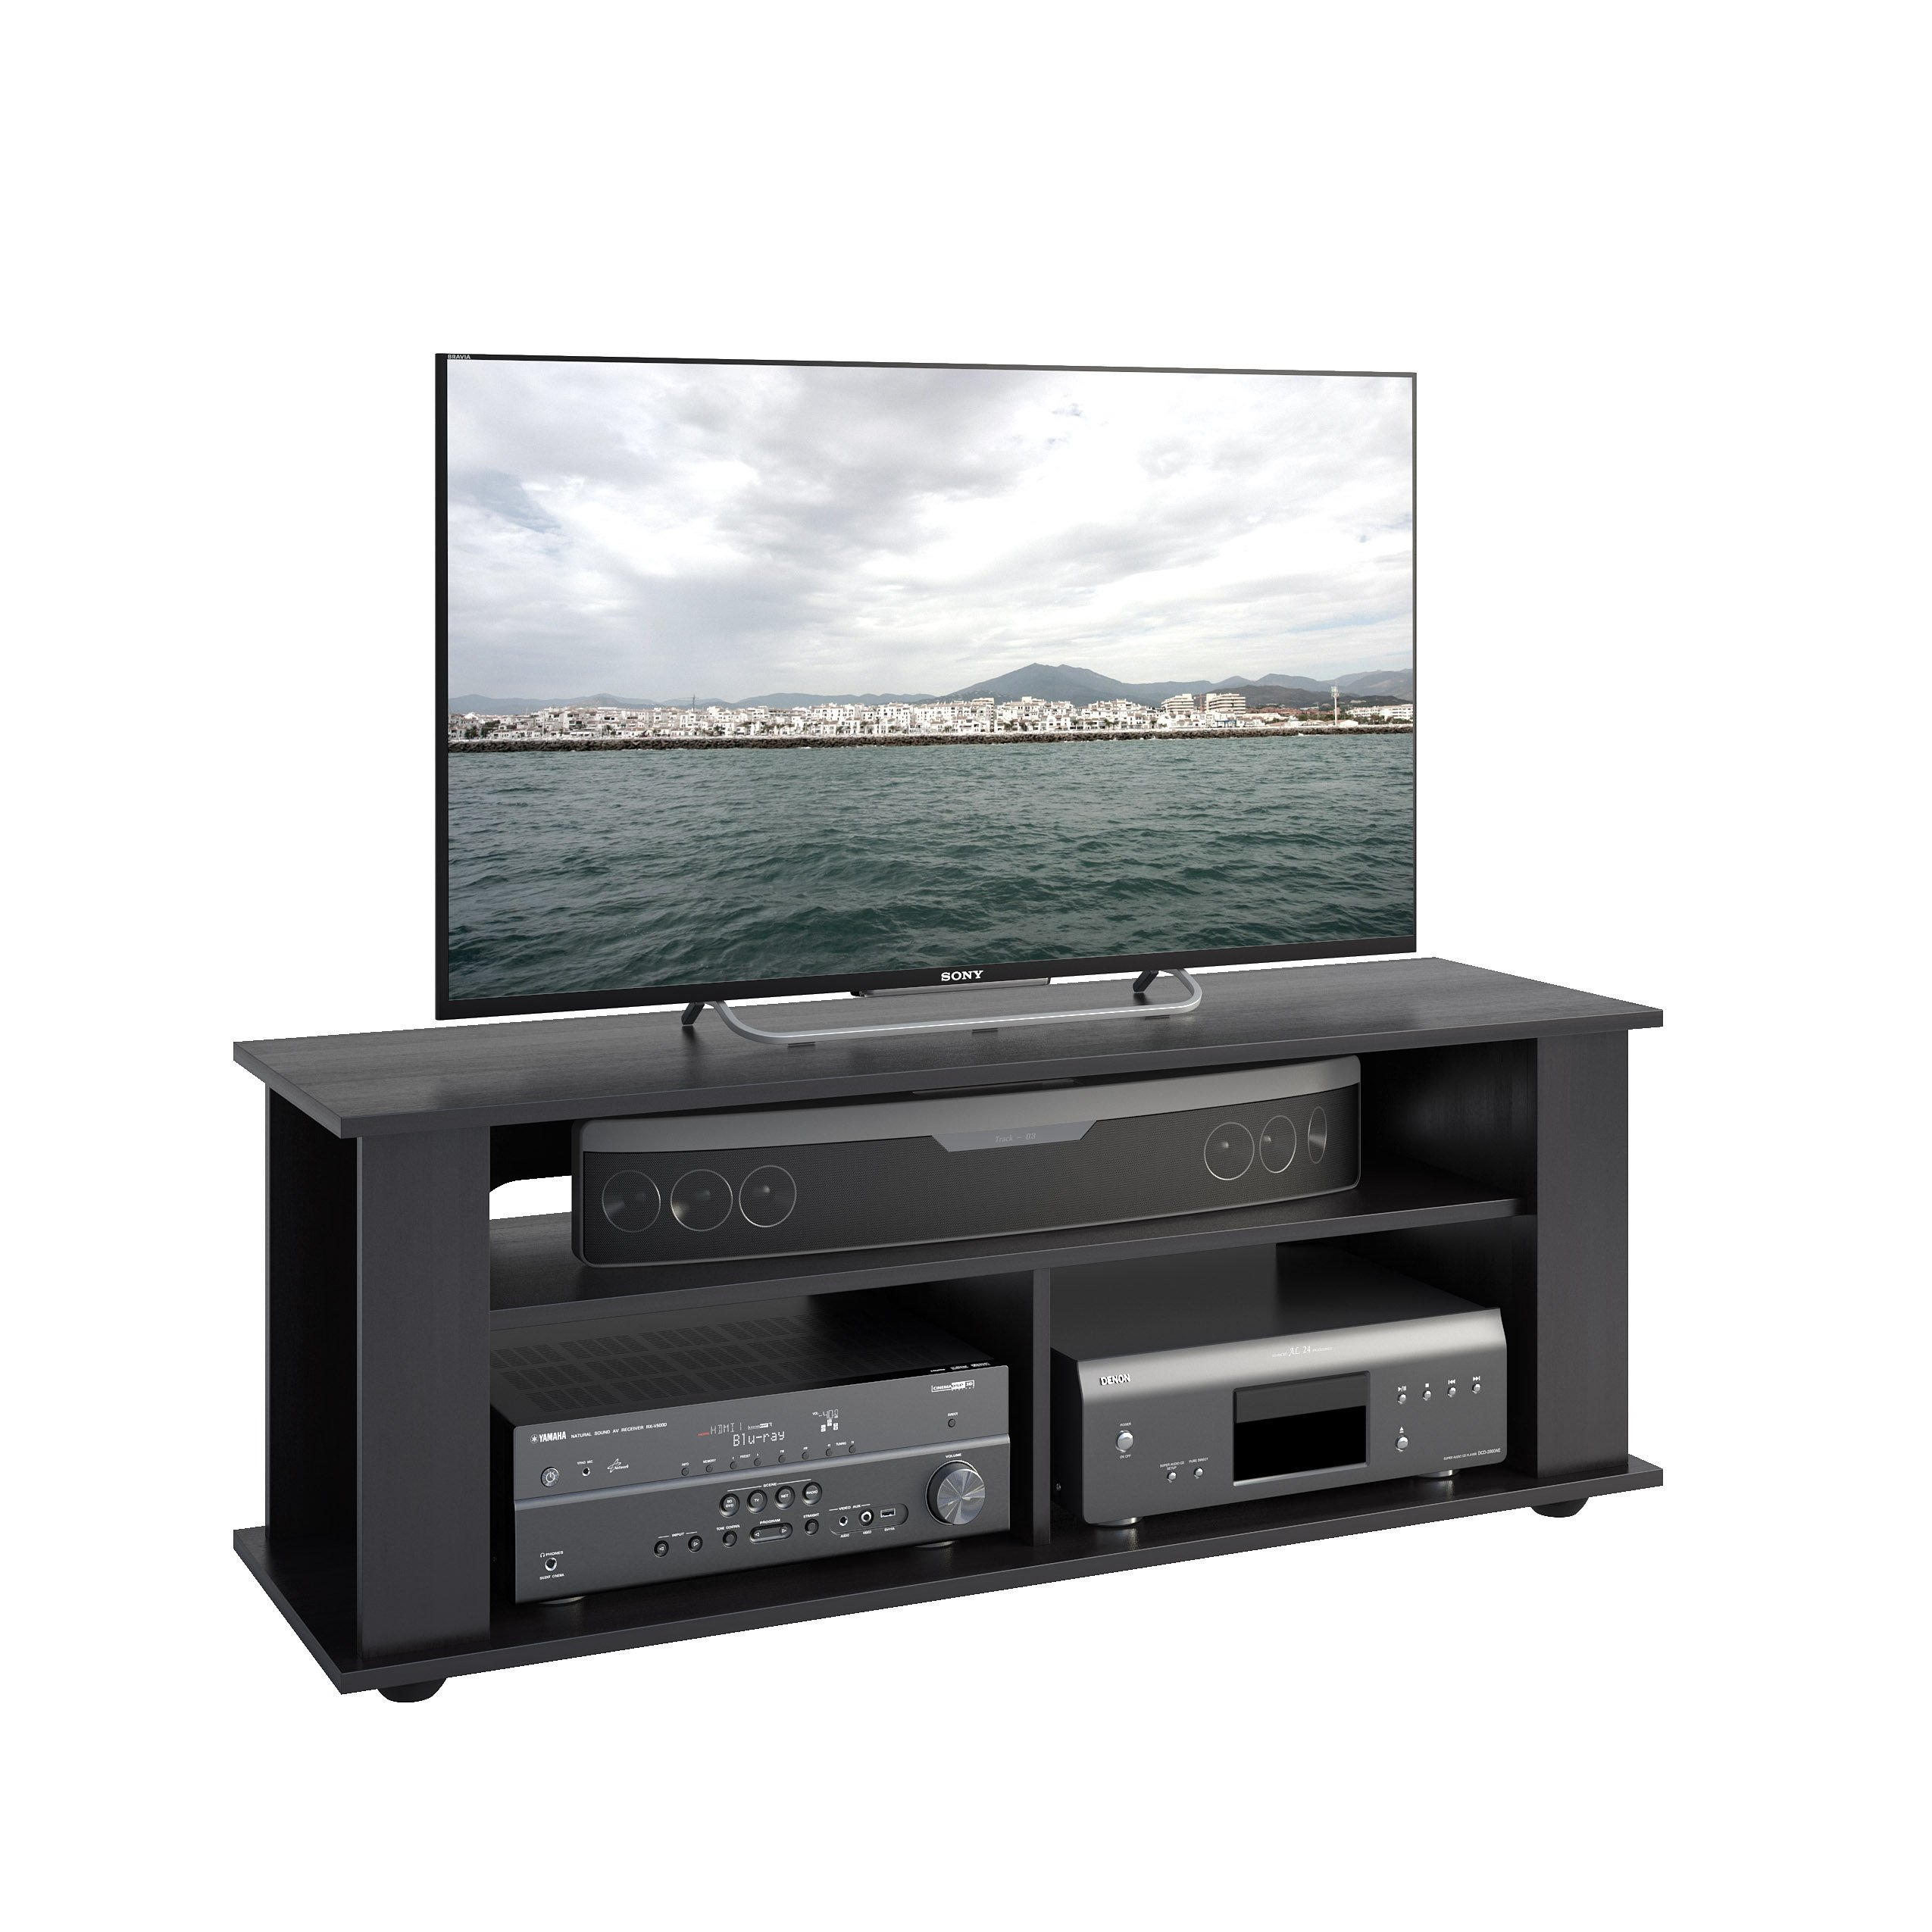 CorLiving TBF-604-B Bakersfield Ravenwood TV/Component Stand, Black